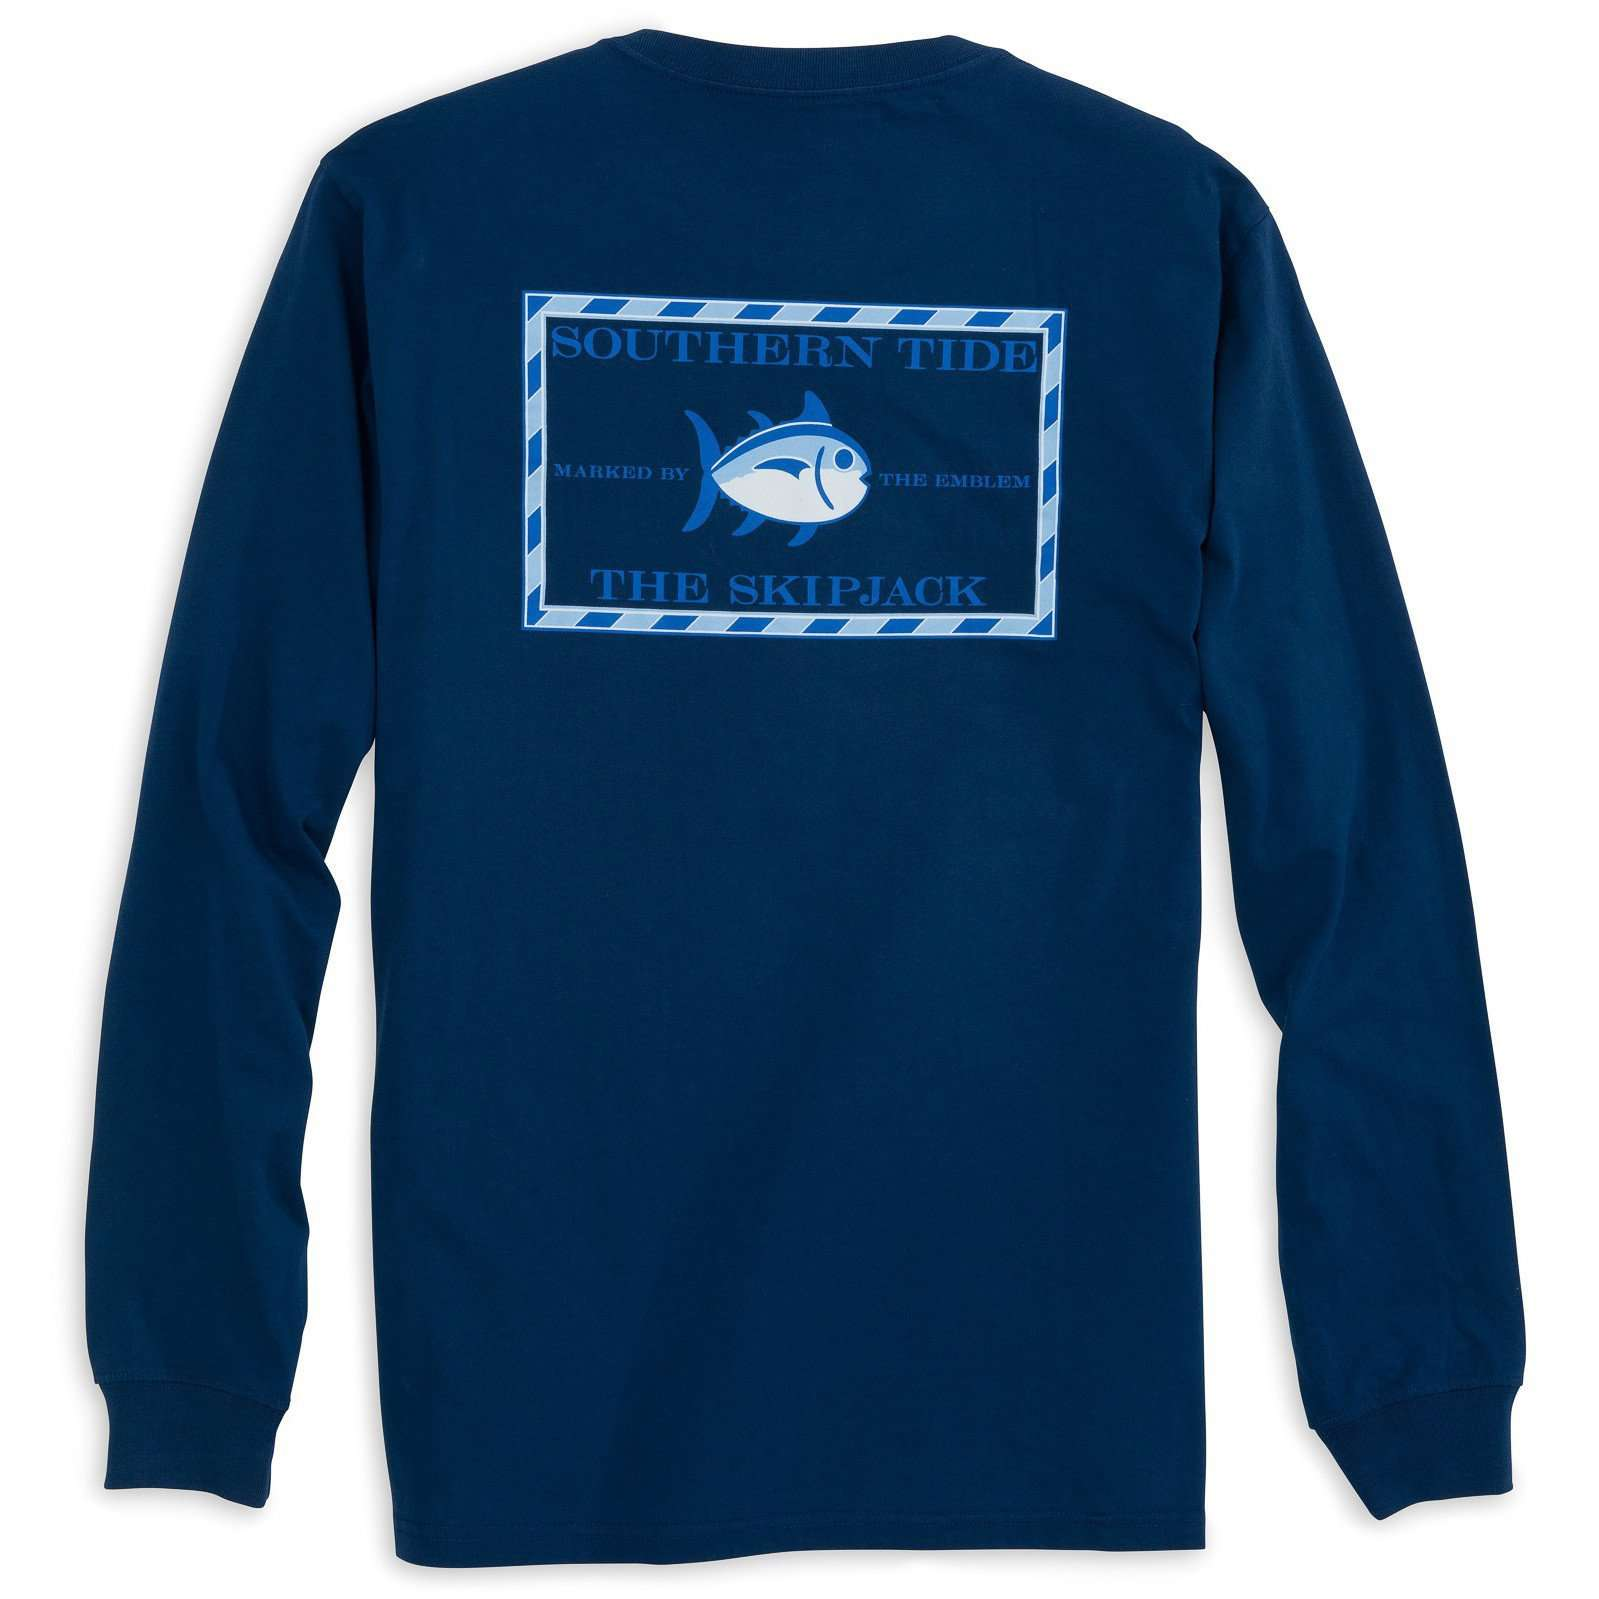 Men's Tee Shirts - Long Sleeve Original Skipjack Tee Shirt In Yacht Blue By Southern Tide